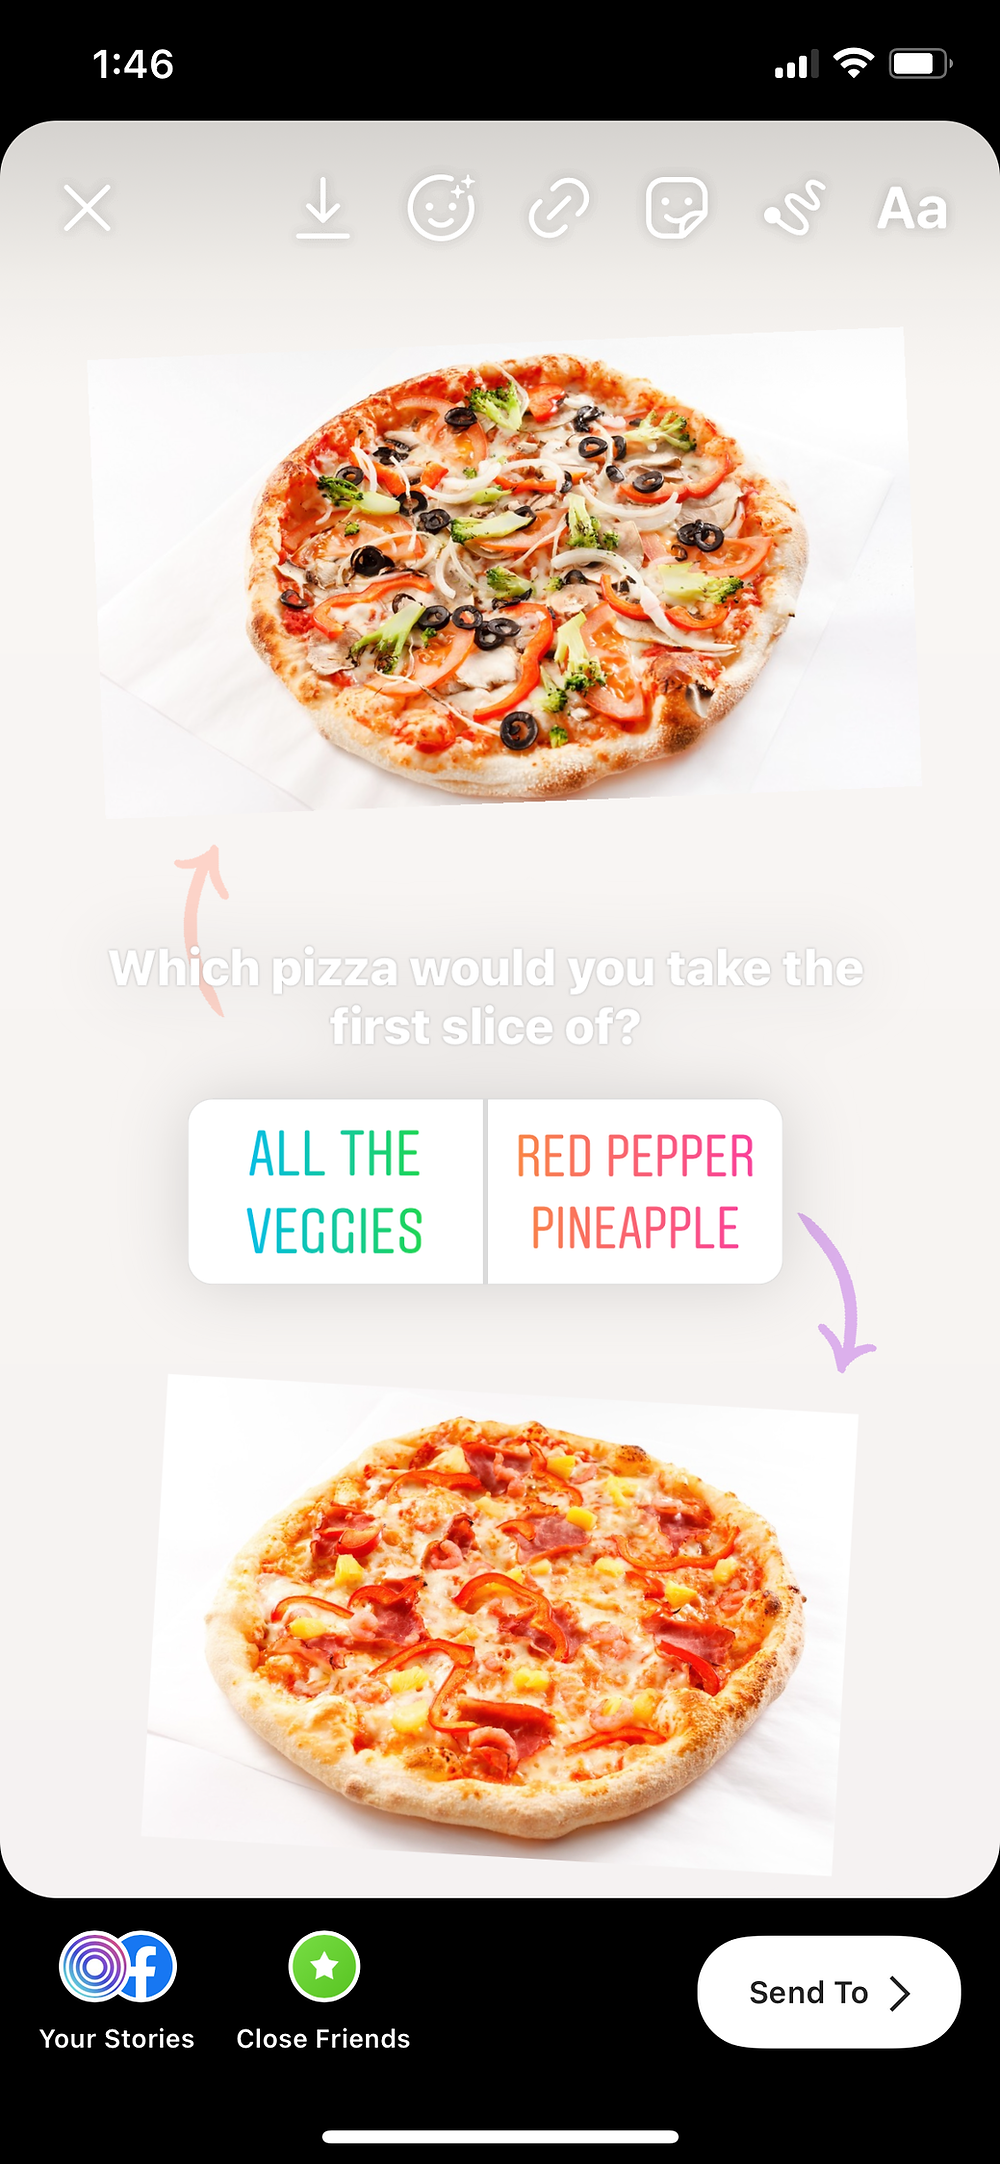 Example of a this or that Instagram story poll with pizza choices